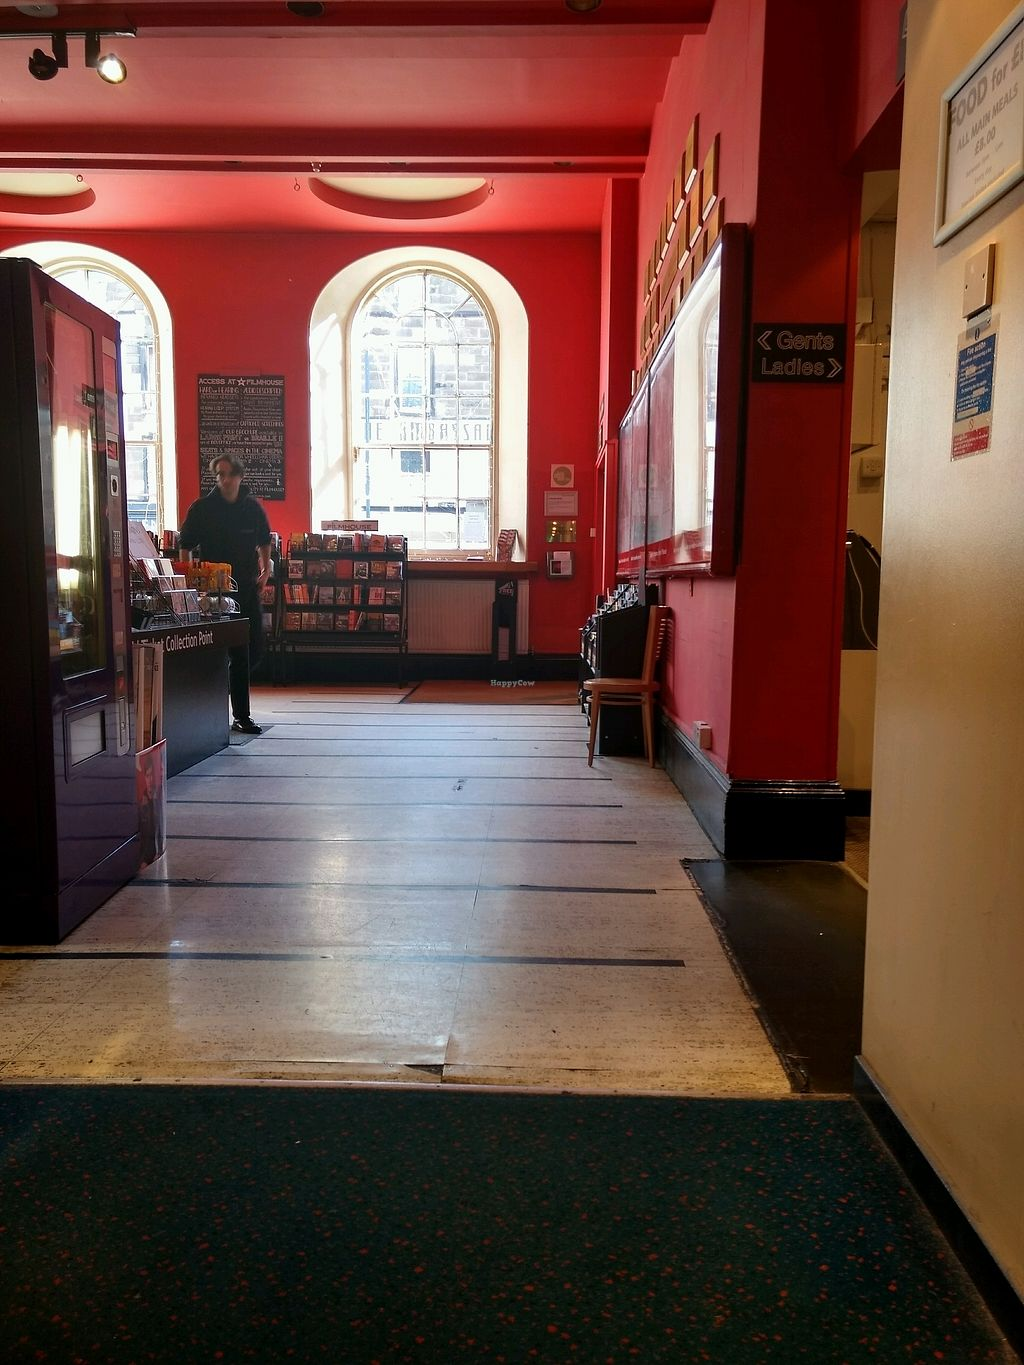 """Photo of Filmhouse Cinema Cafe Bar  by <a href=""""/members/profile/craigmc"""">craigmc</a> <br/>foyer <br/> April 1, 2018  - <a href='/contact/abuse/image/42360/379284'>Report</a>"""